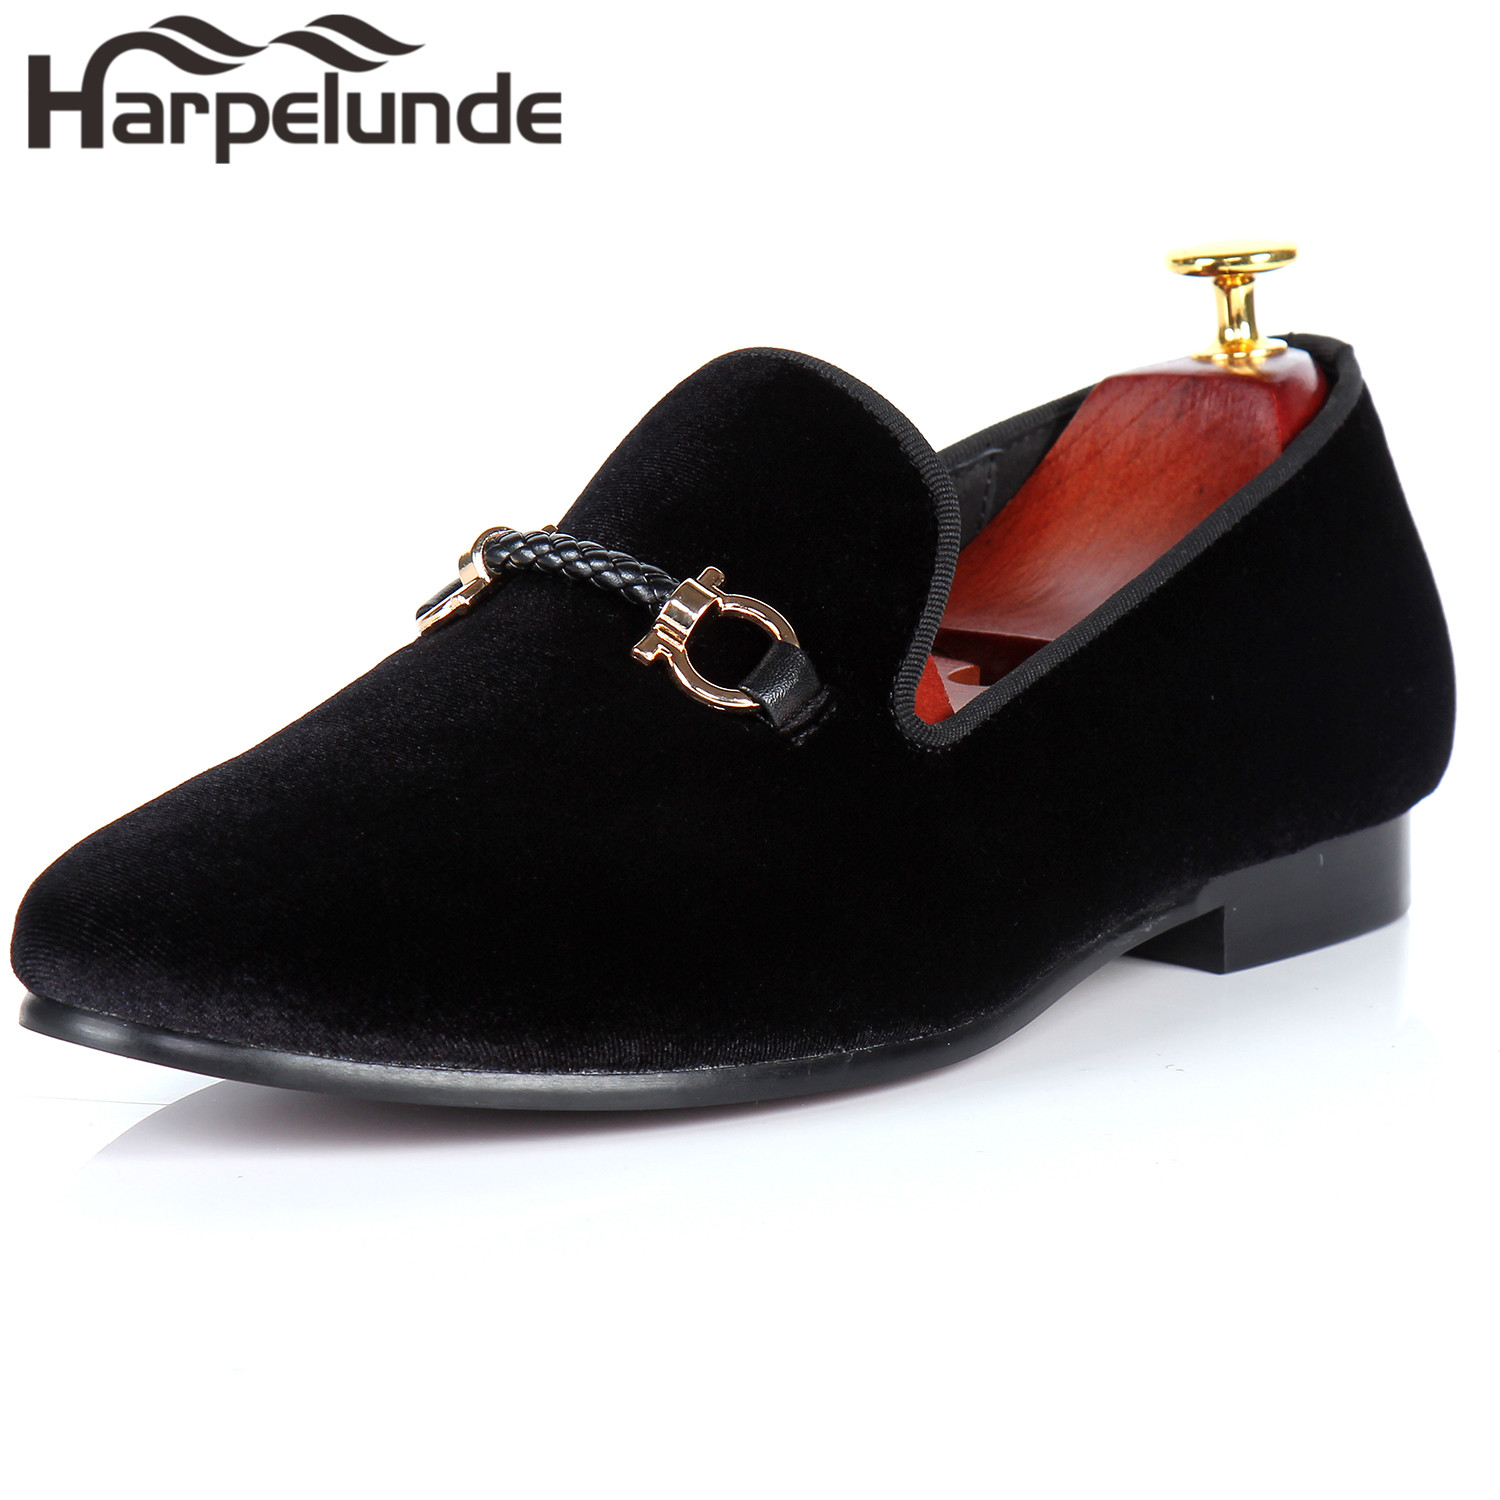 Harpelunde Buckle Men Dress Shoes Black Velvet Loafers Fesyen Saiz Kasut 6-14